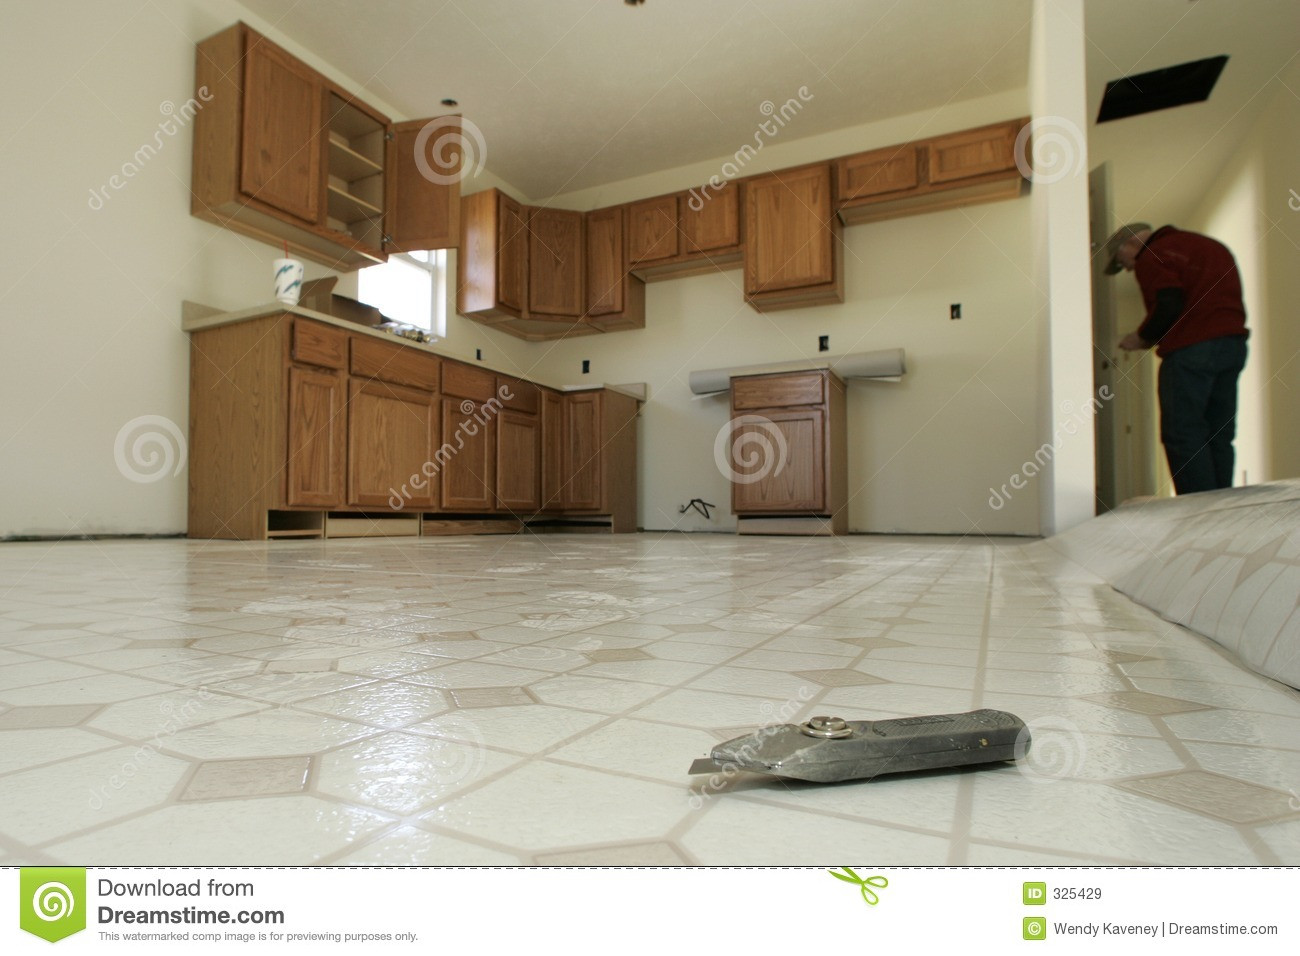 Hardwood Flooring Contractors Near Me Of Home Depot Vinyl Flooring Houses Flooring Picture Ideas Galley within Kitchen Floor Installation Royalty Free Stock Images